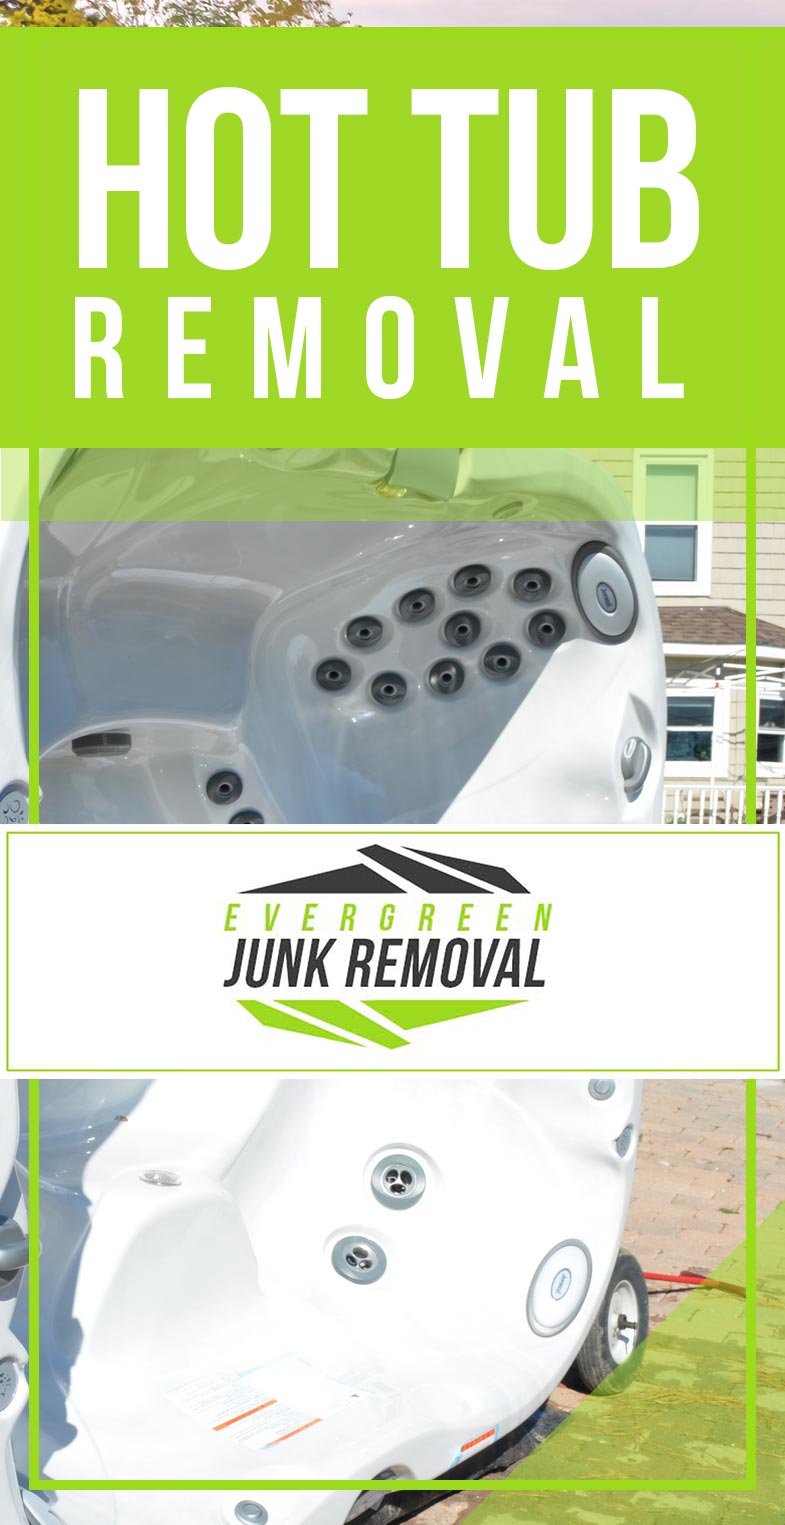 Dellwood Hot Tub Removal